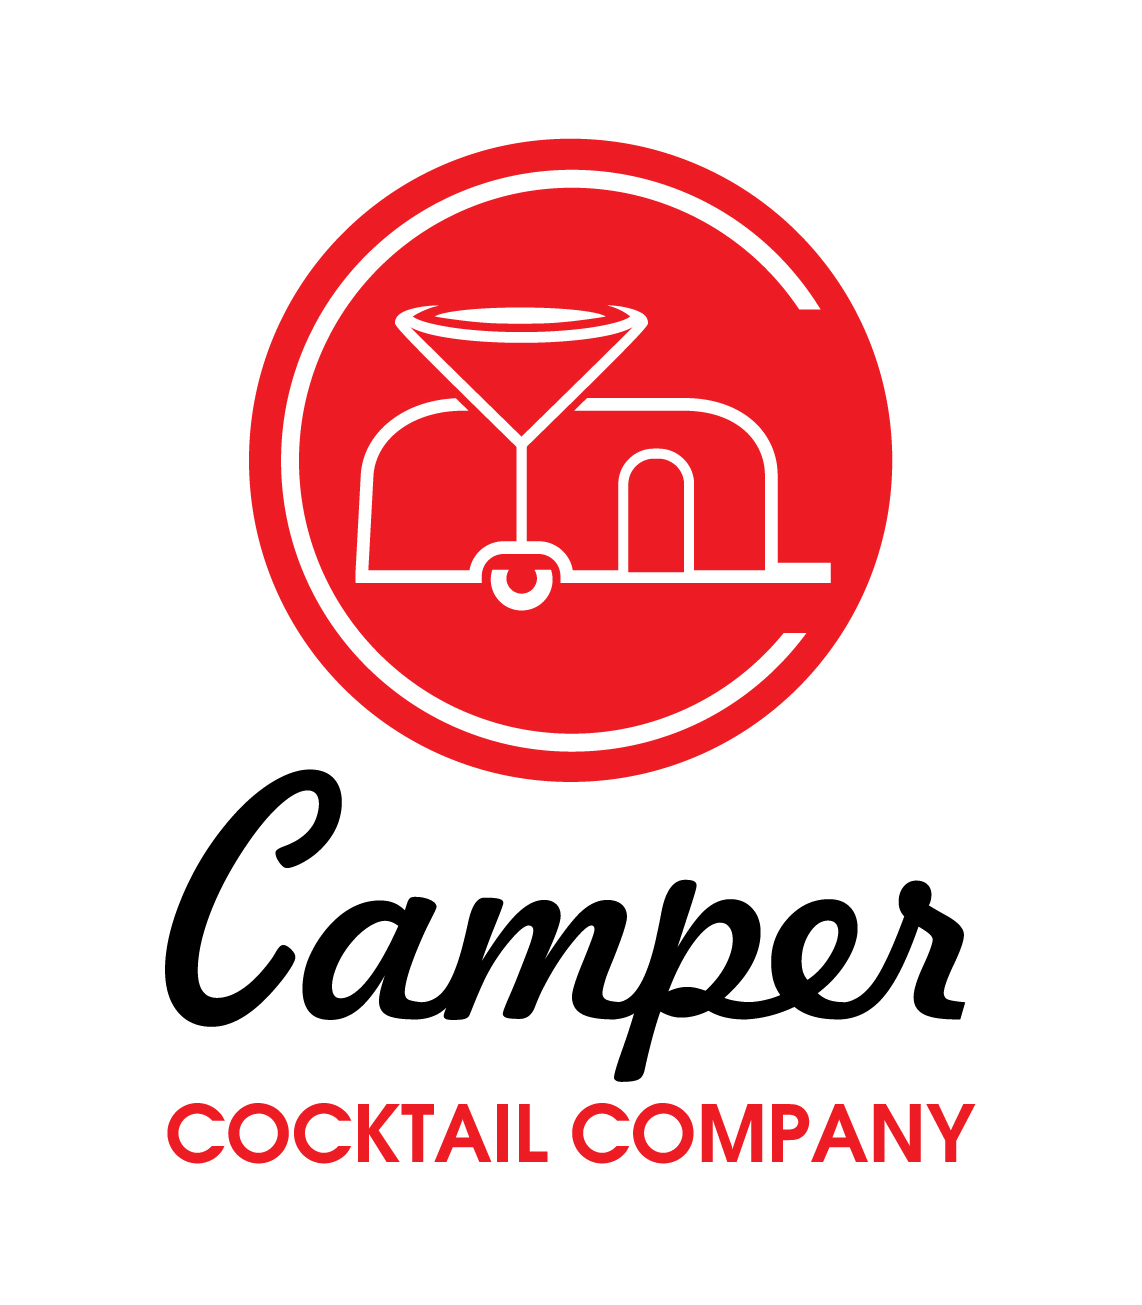 Camper Cocktail Company